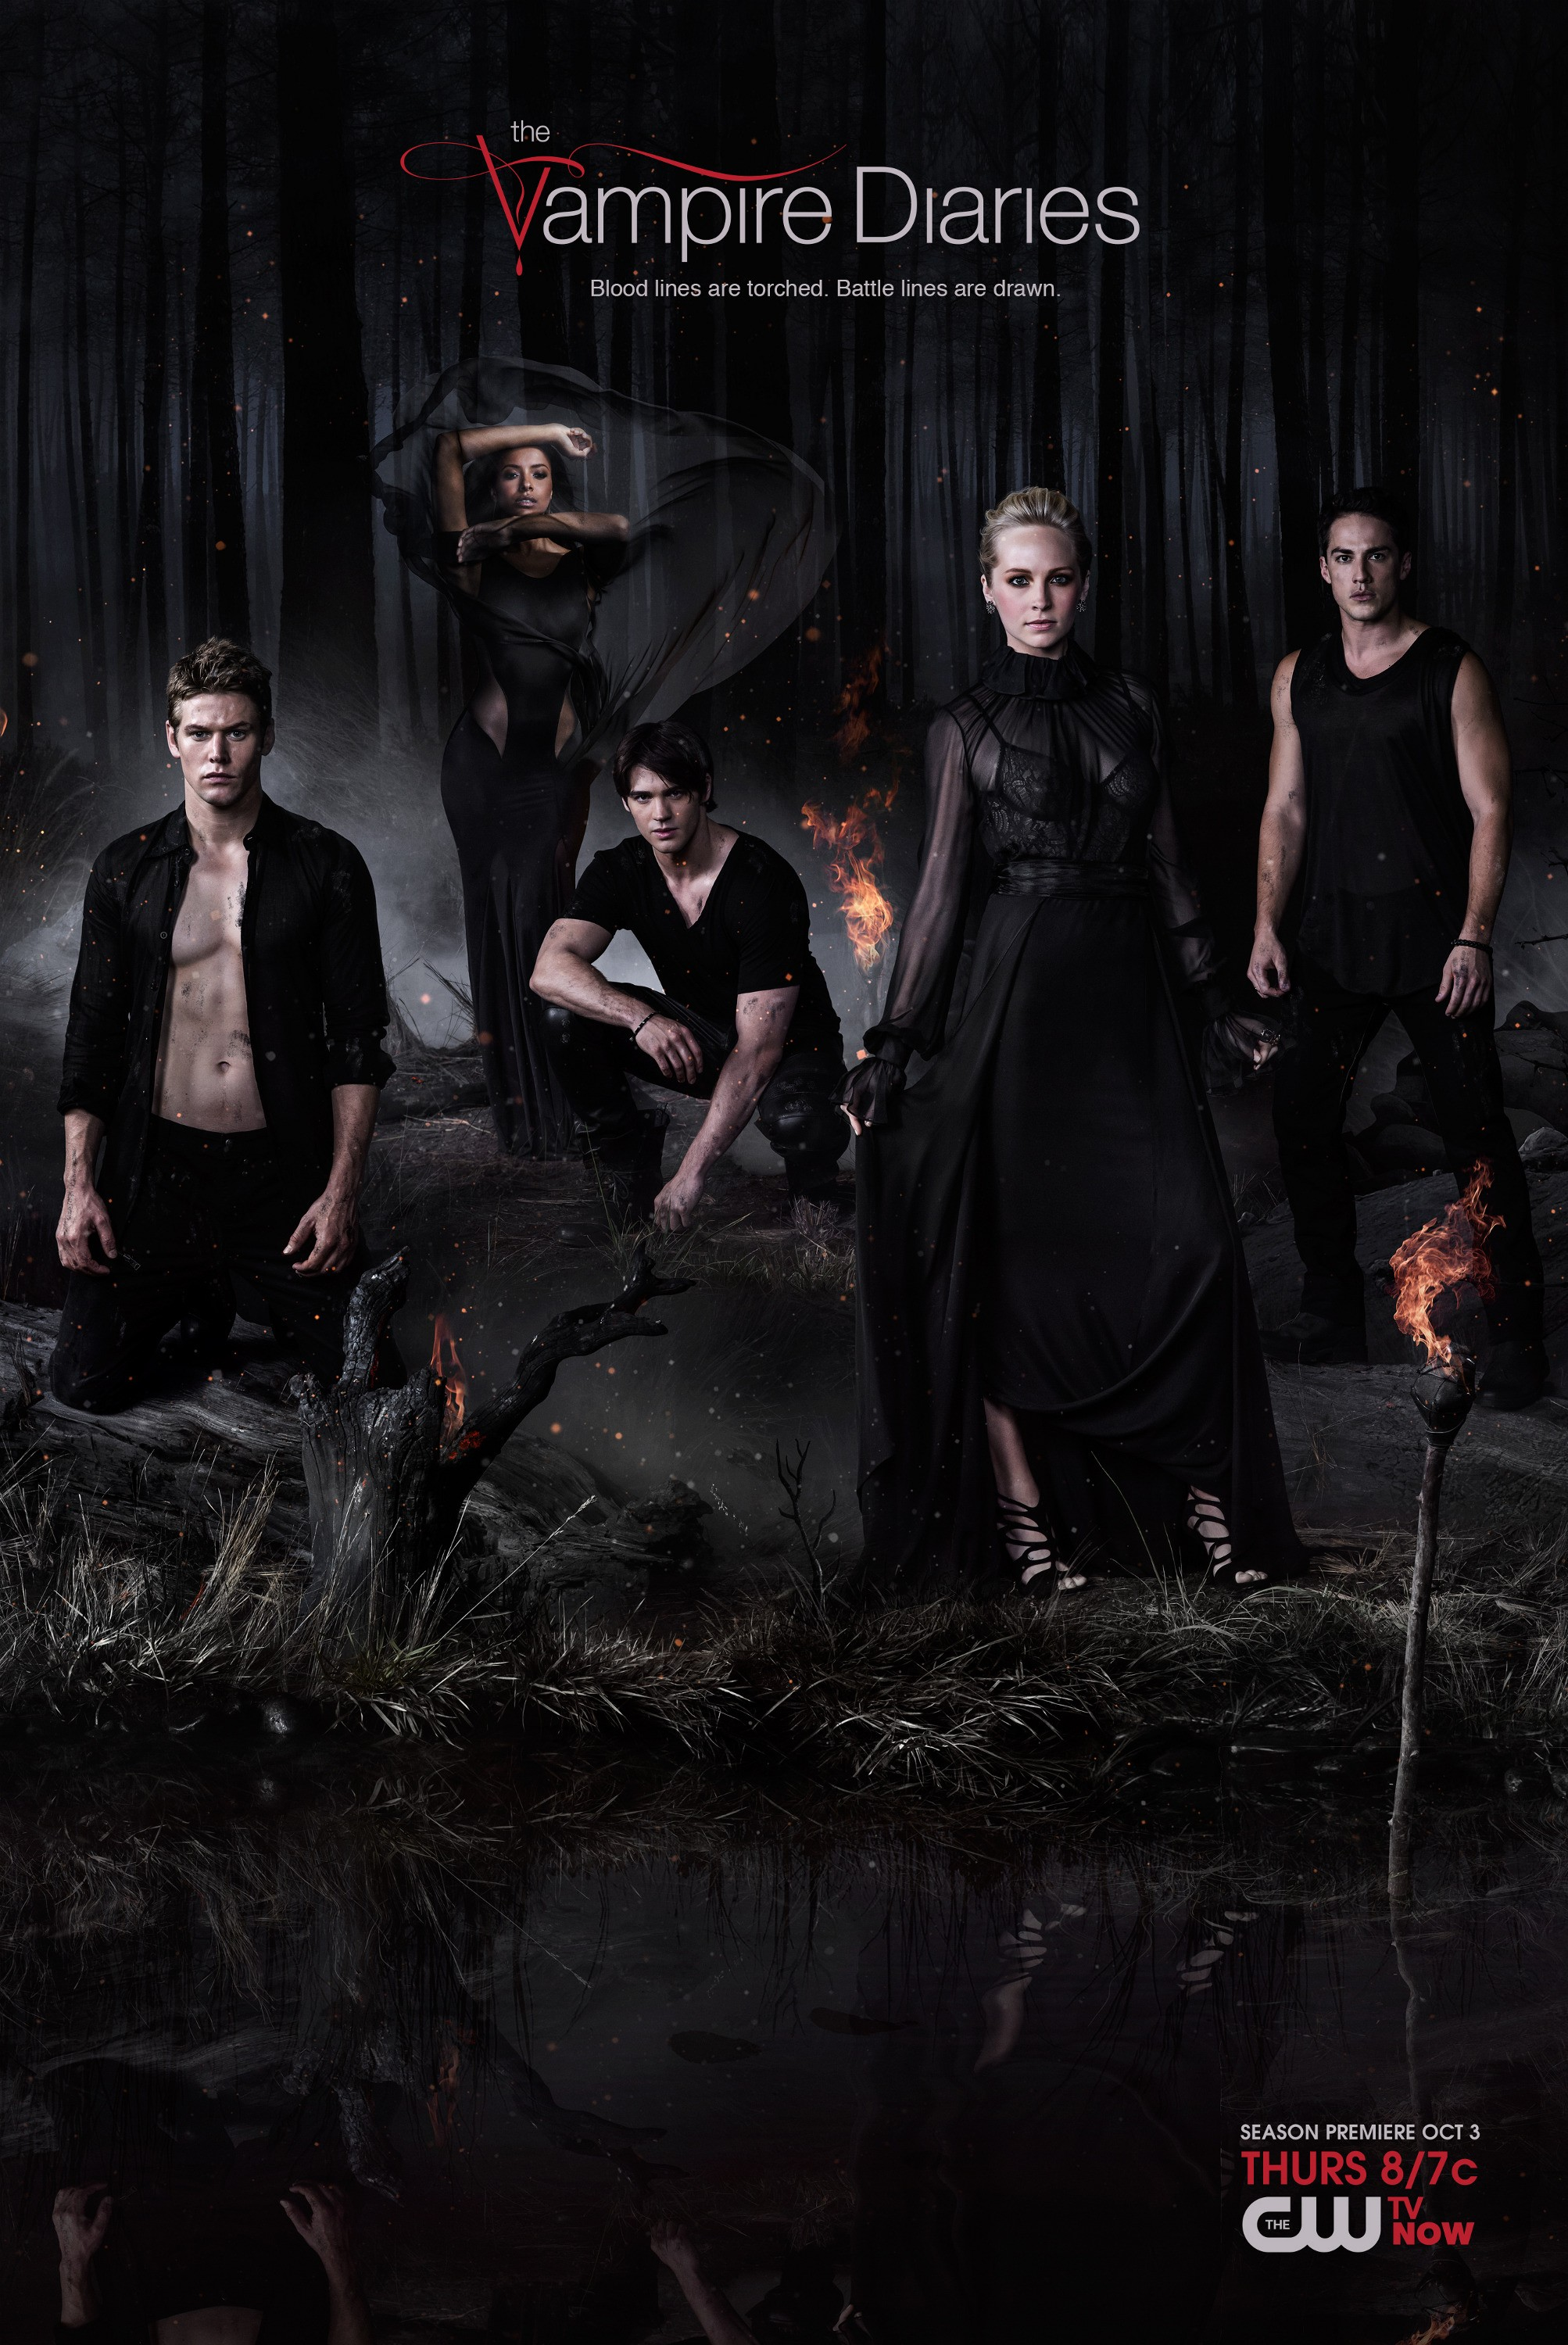 The Vampire Diaries-Season 5-Official Poster Banner PROMO POSTER-18SETEMBRO2013-01